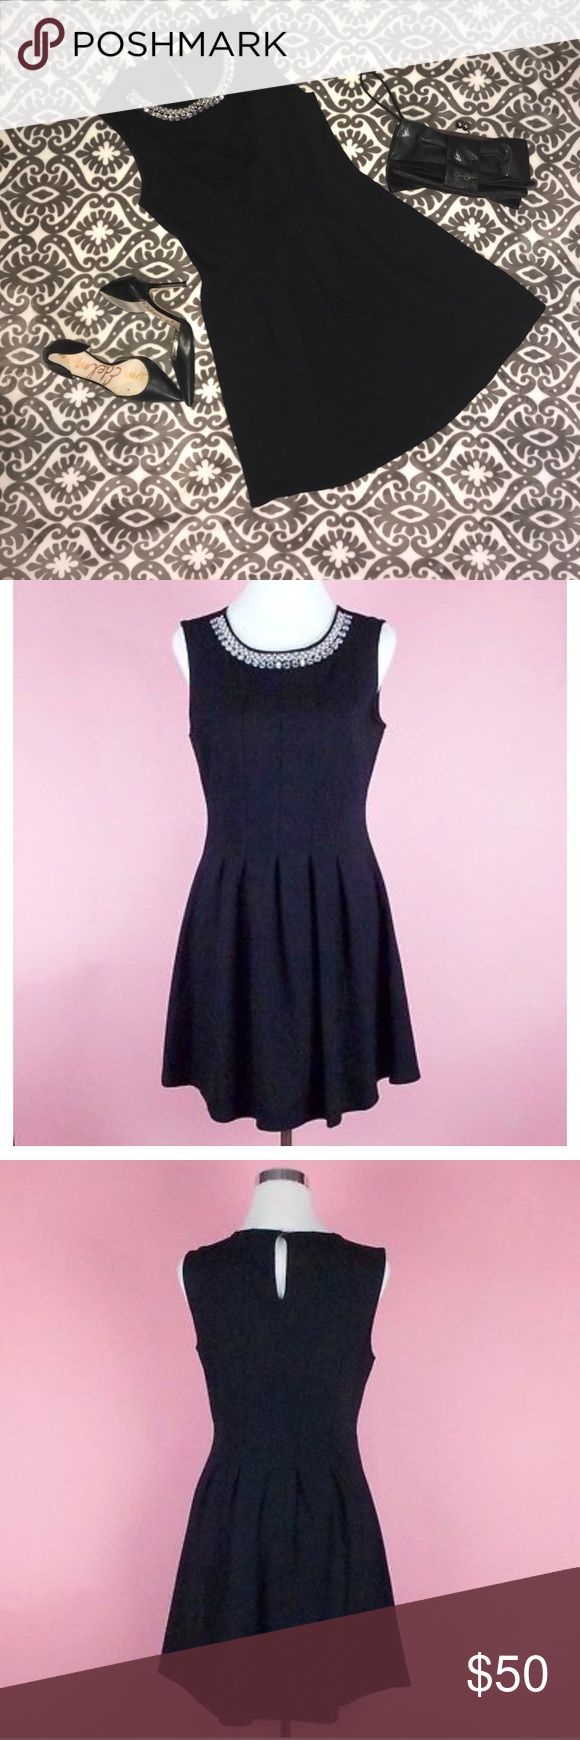 """LITTLE BLACK DRESS  SIZE LARGE NWOT Beautiful little black sleeveless ponte-fit & flare style cocktail dress perfect for any occasion. No need to accessorize with this embellished rhinestone & pearl scoop neckline has a statement necklace built in, just throw on your favorite heels & go! High quality, well made with plenty of attention to detail, material is thicker than most dresses giving luxurious feel. NEVER WORN WAIST: laying flat 16"""" BUST: armpit-armpit 18"""" LENGTH: shoulder to bottom…"""